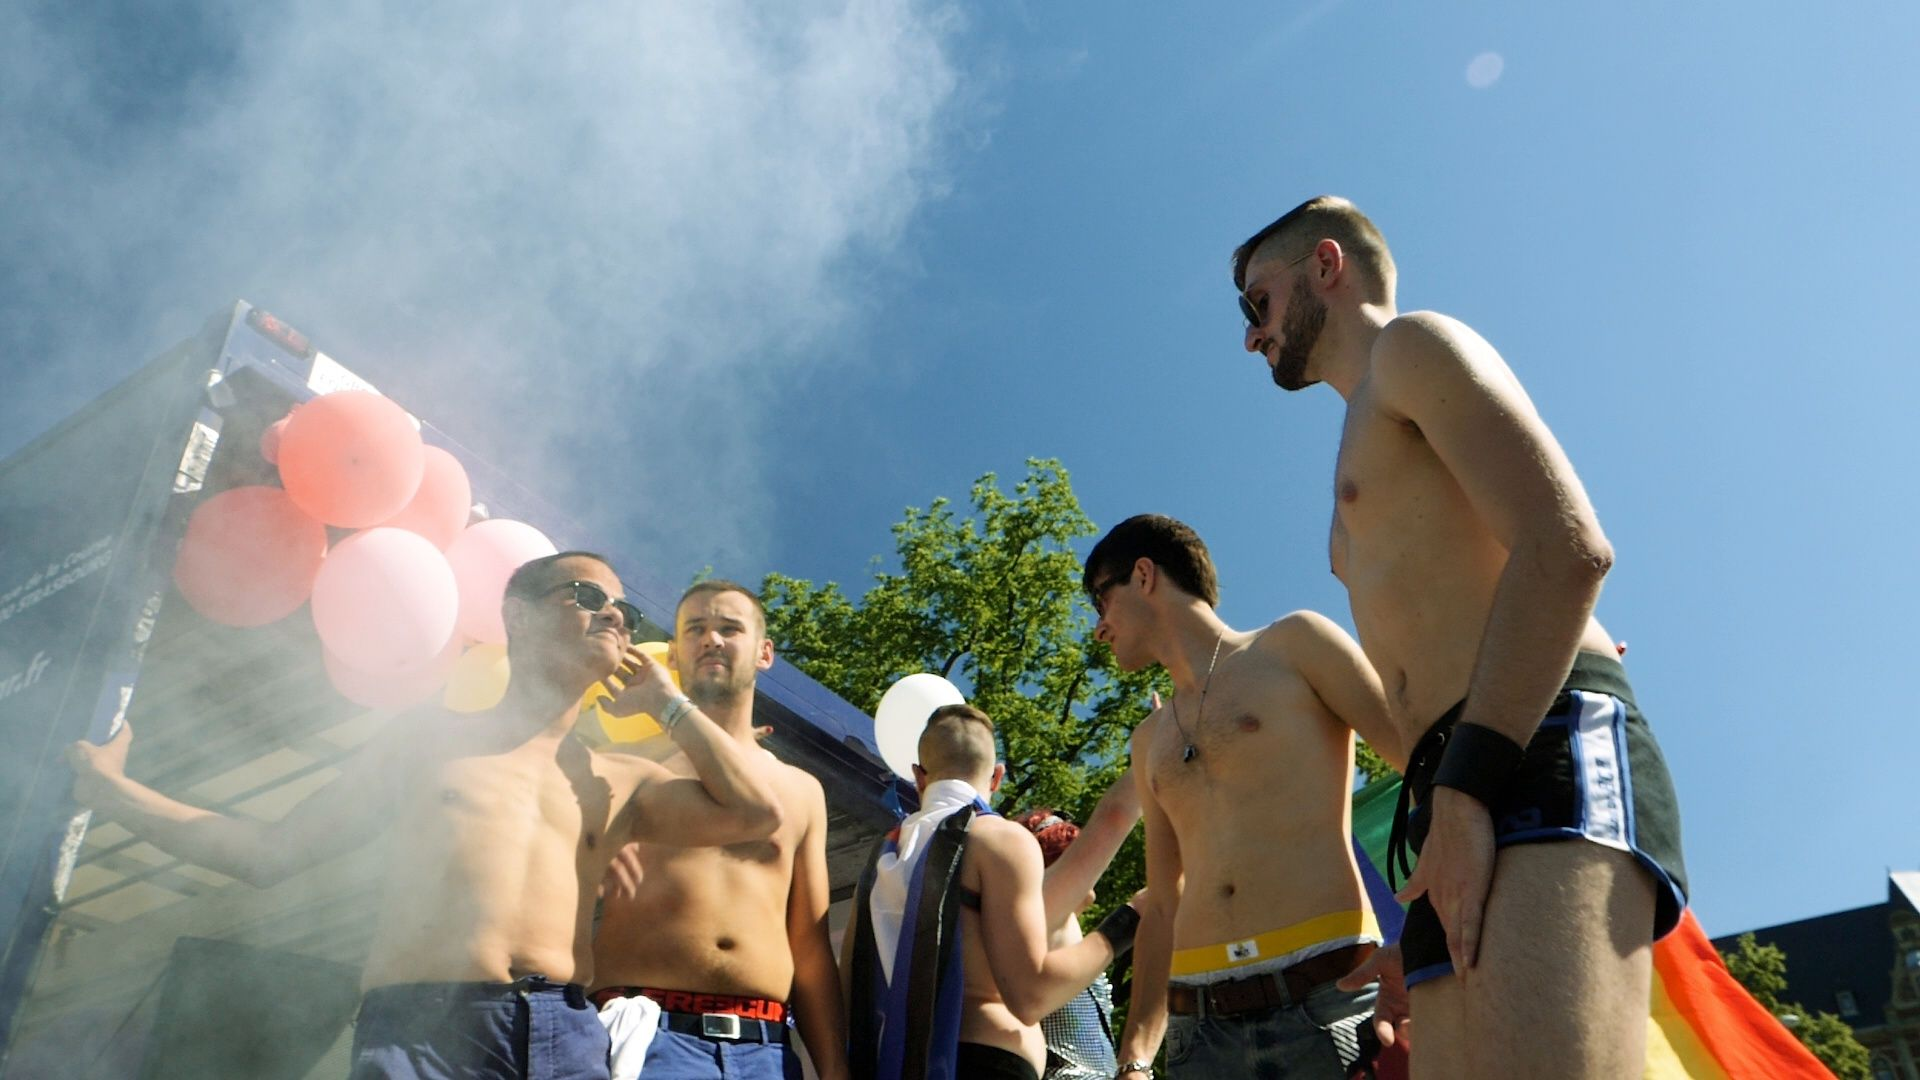 Smoke grenade at Gay pride in slow motion dancing LGBT people Stock  Footage,#pride#slow#Gay#Smoke